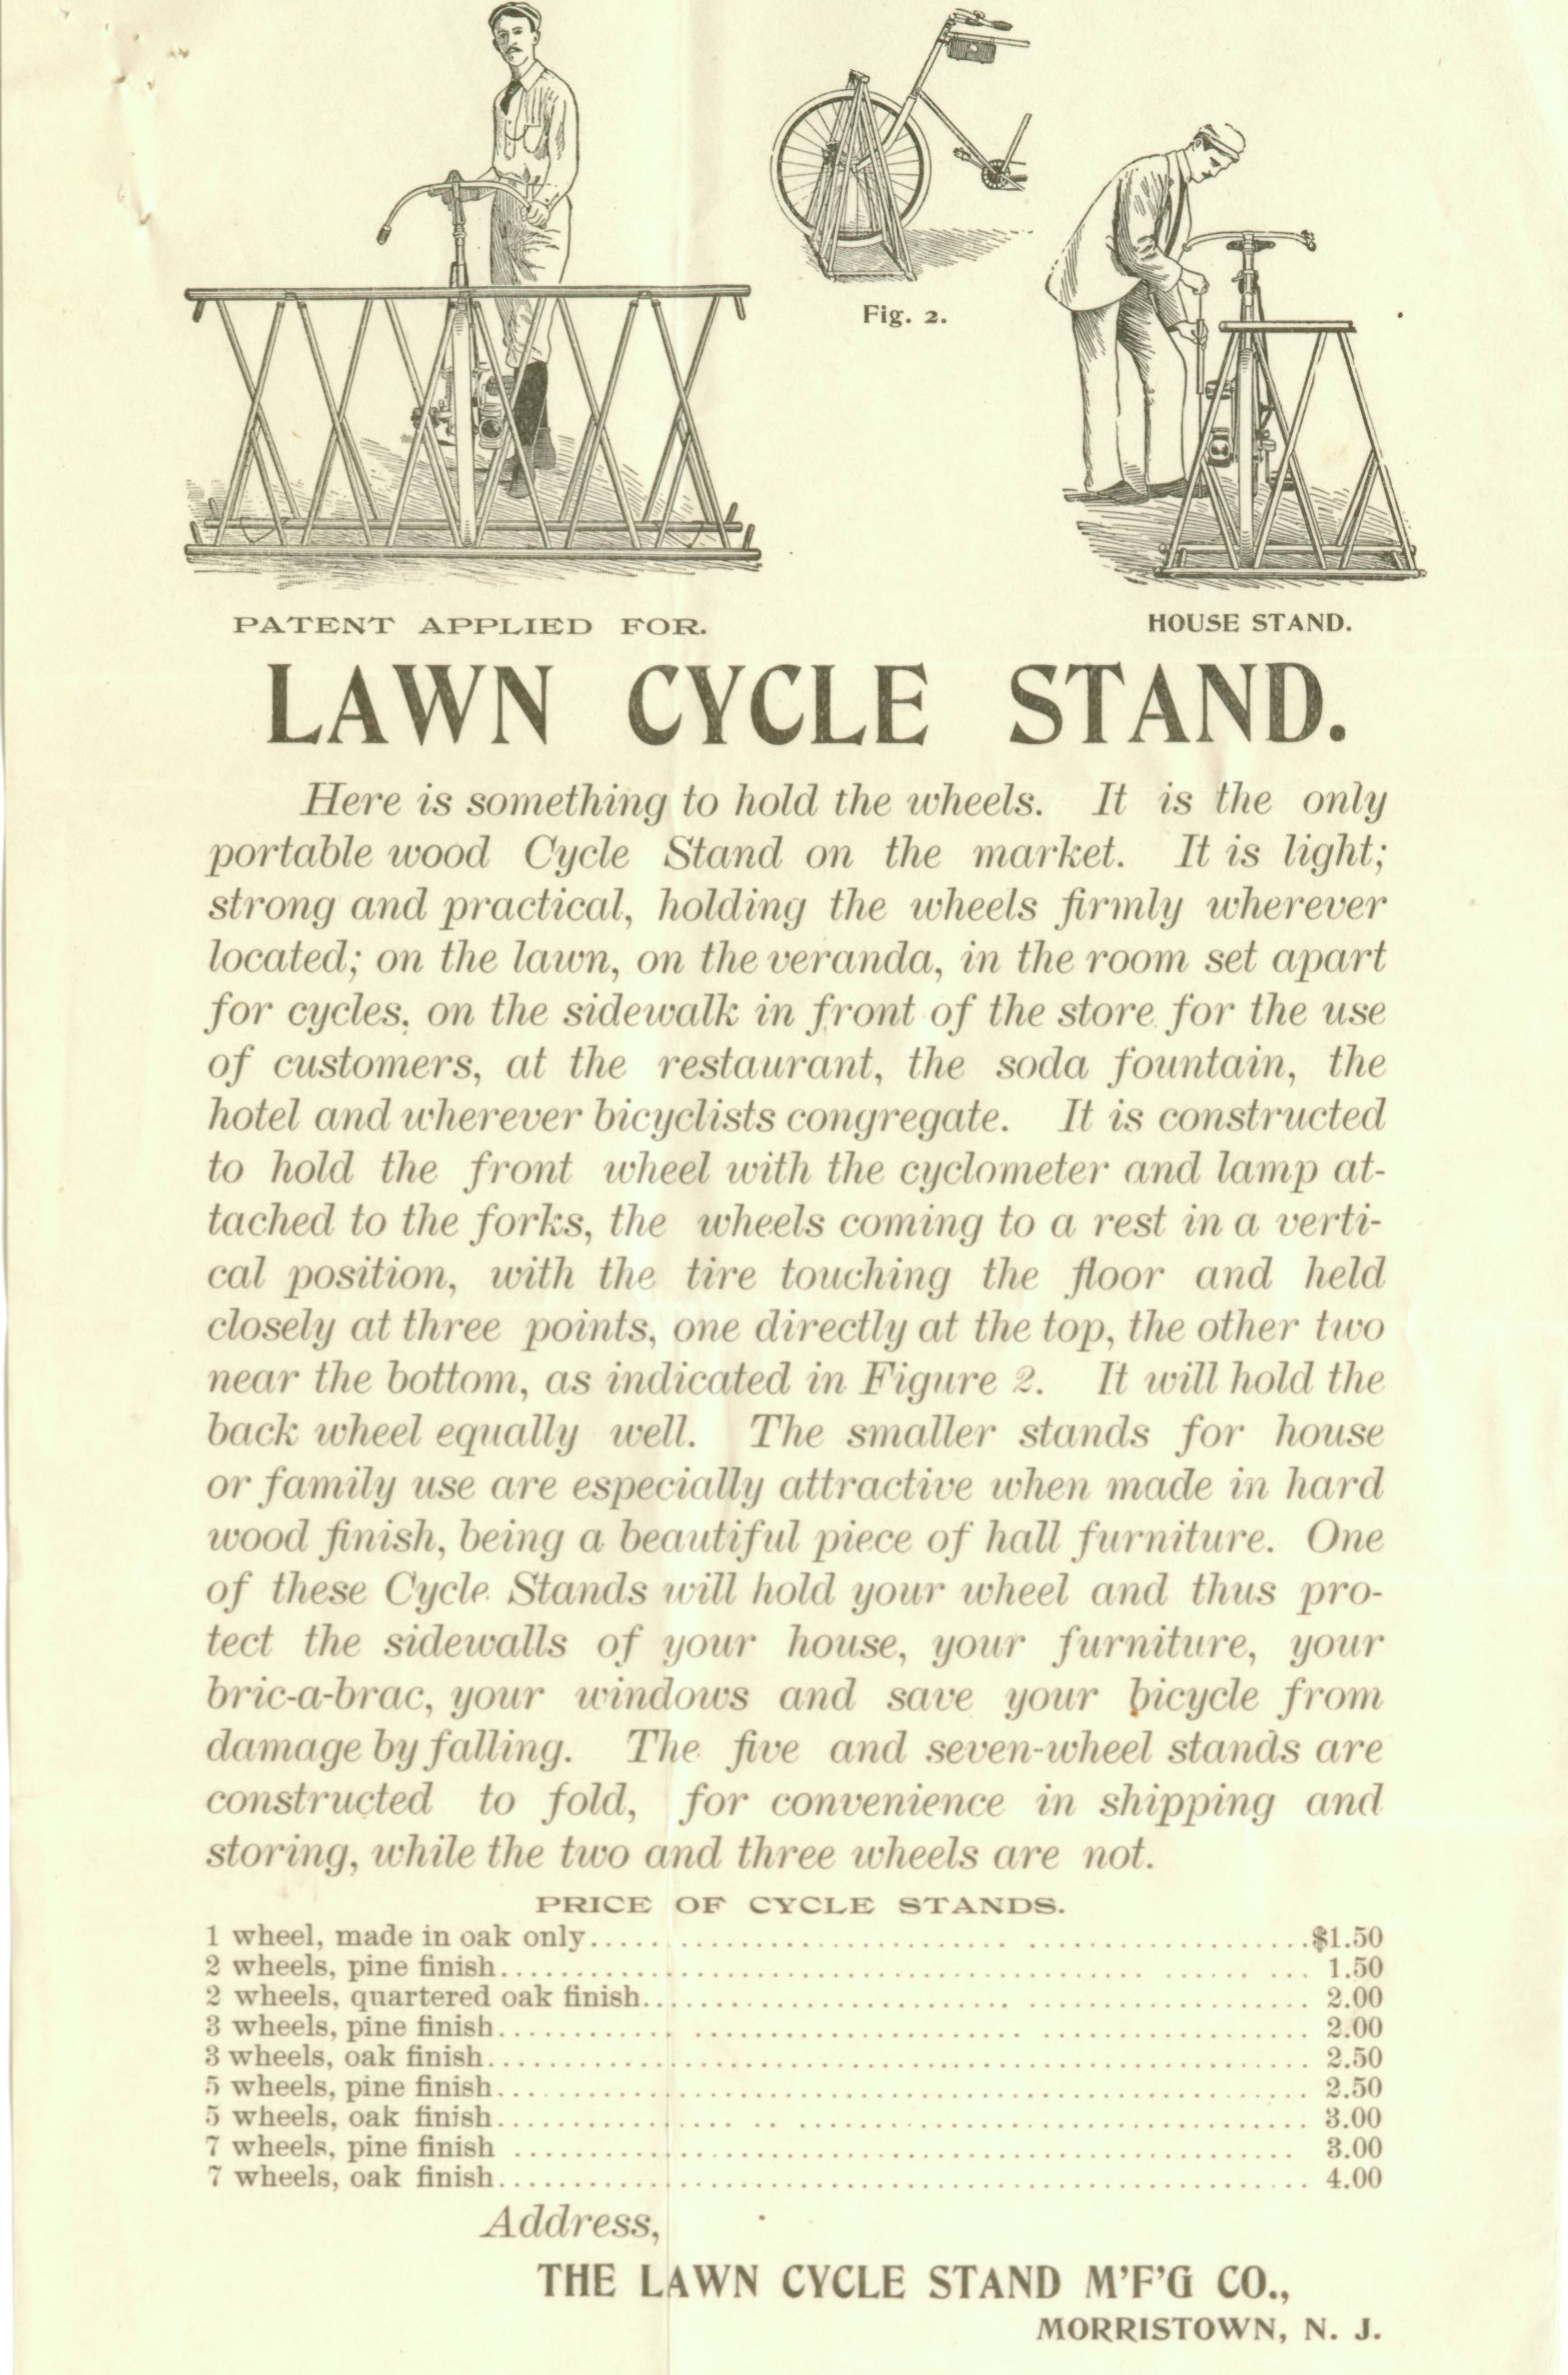 Advertising flyer from the Lawn Cycle Stand Manufacturing Co.